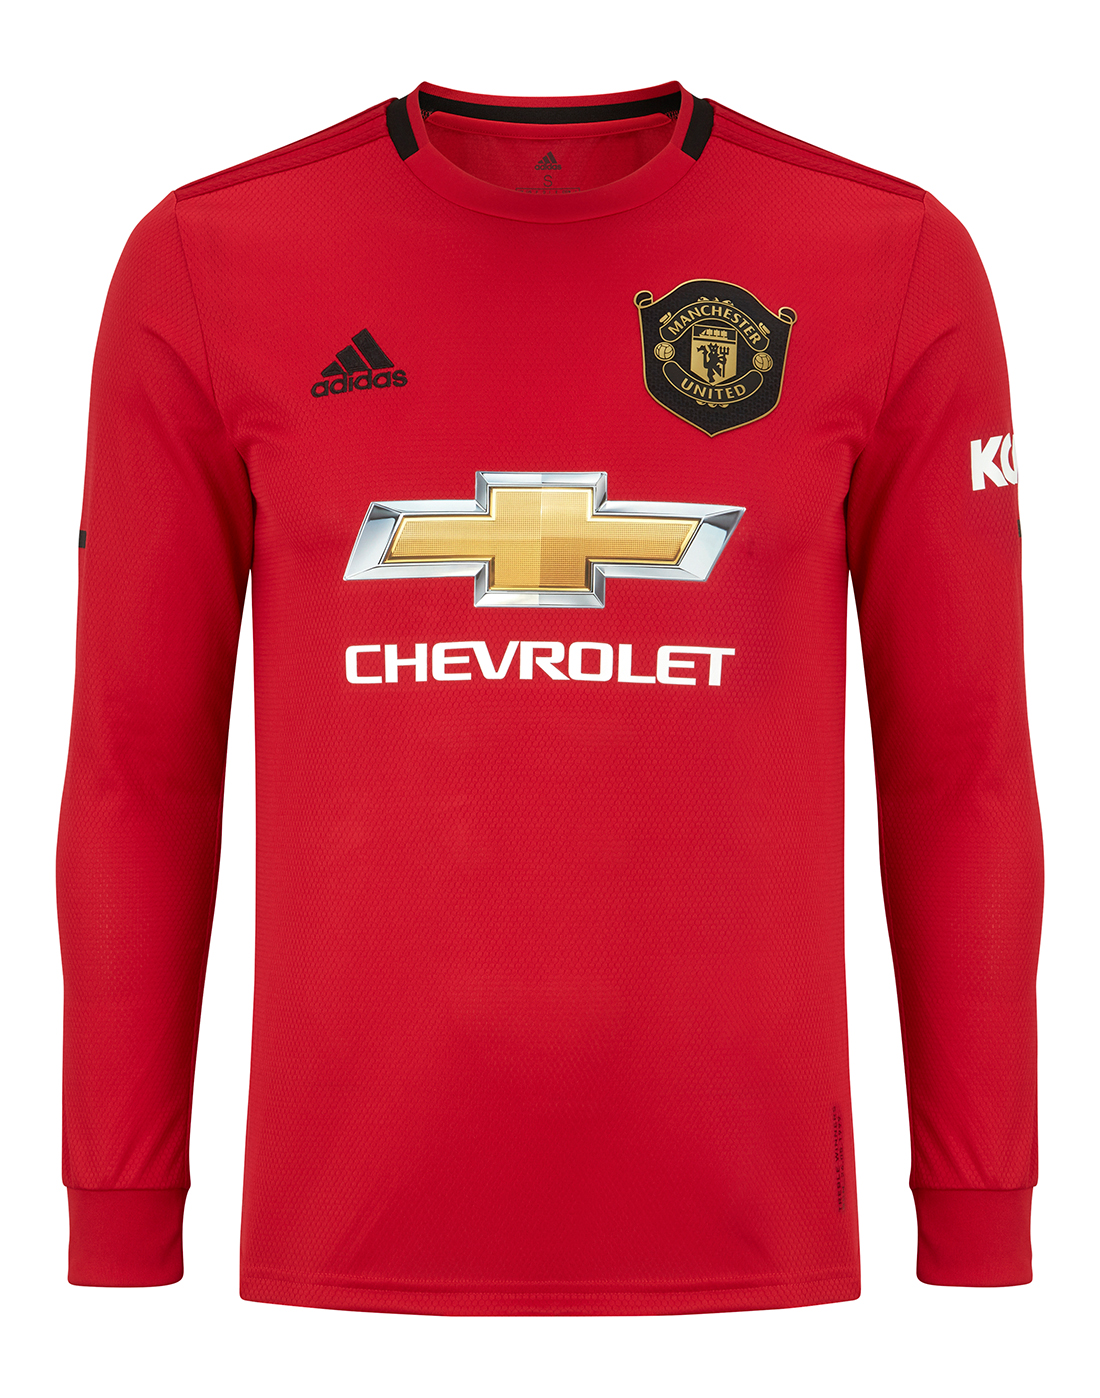 Man United 19/20 Home Long Sleeve Jersey | Life Style Sports